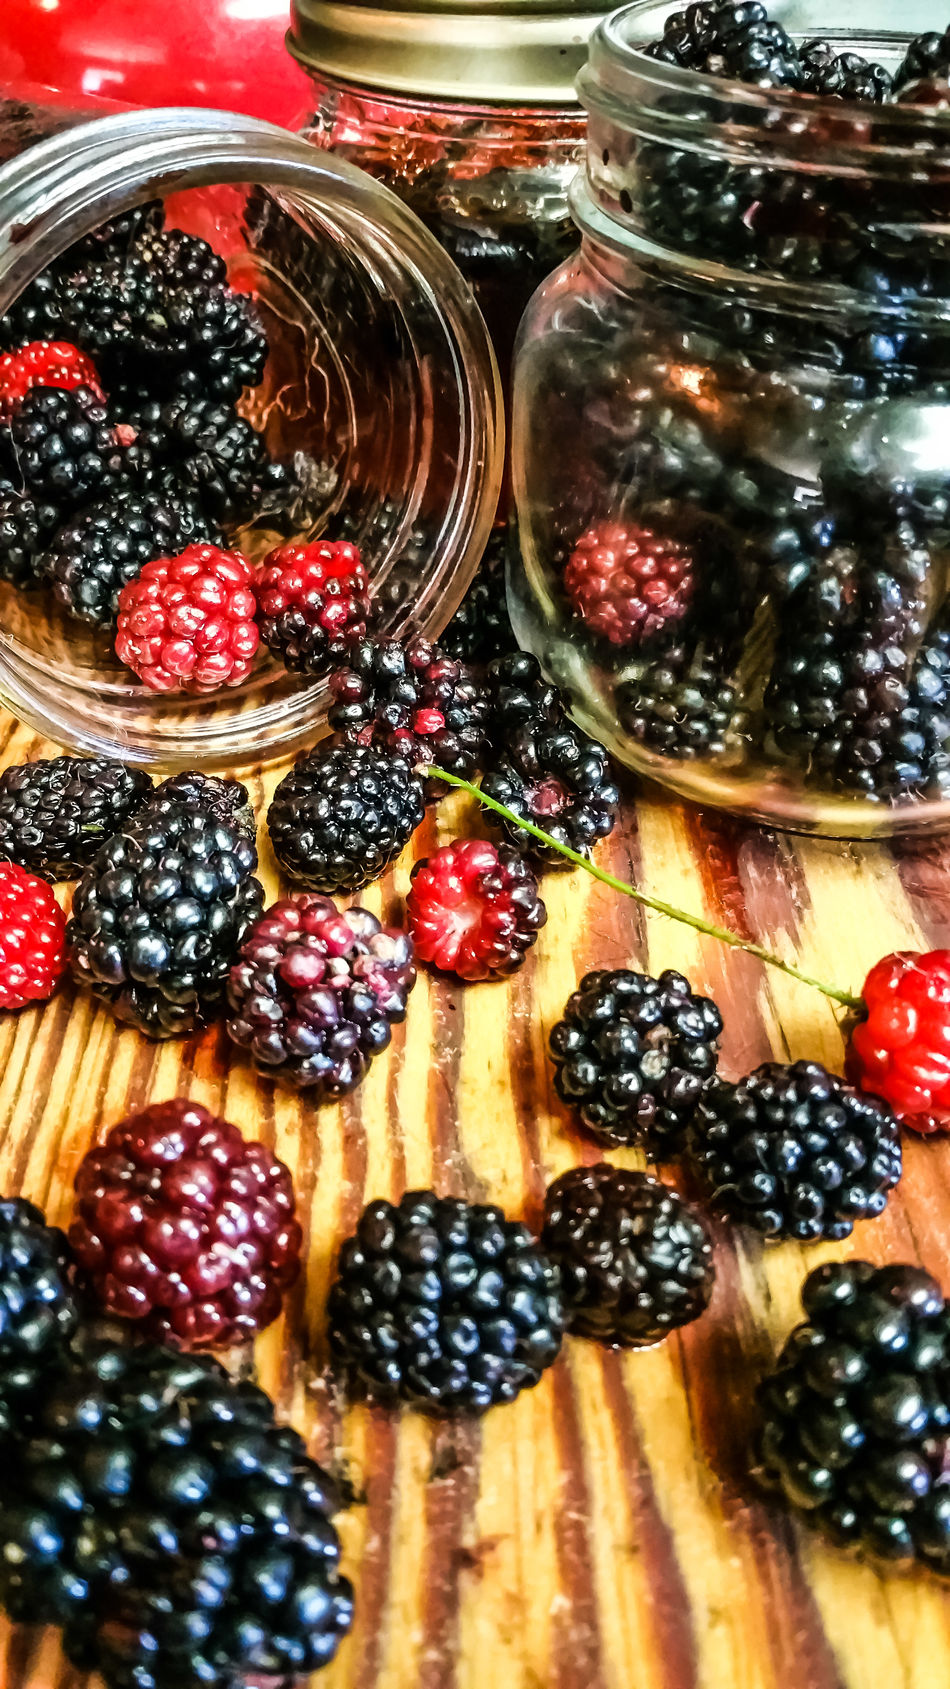 Fruit Blueberry Healthy Eating Food Freshness Food And Drink Indoors  Table No People Sweet Food Close-up Ready-to-eat Day Fresh Fruits Jar Berries Fresh Wild Berries Black Berries Dew Berries Canning Cooking Jelly Making Jam Wooden